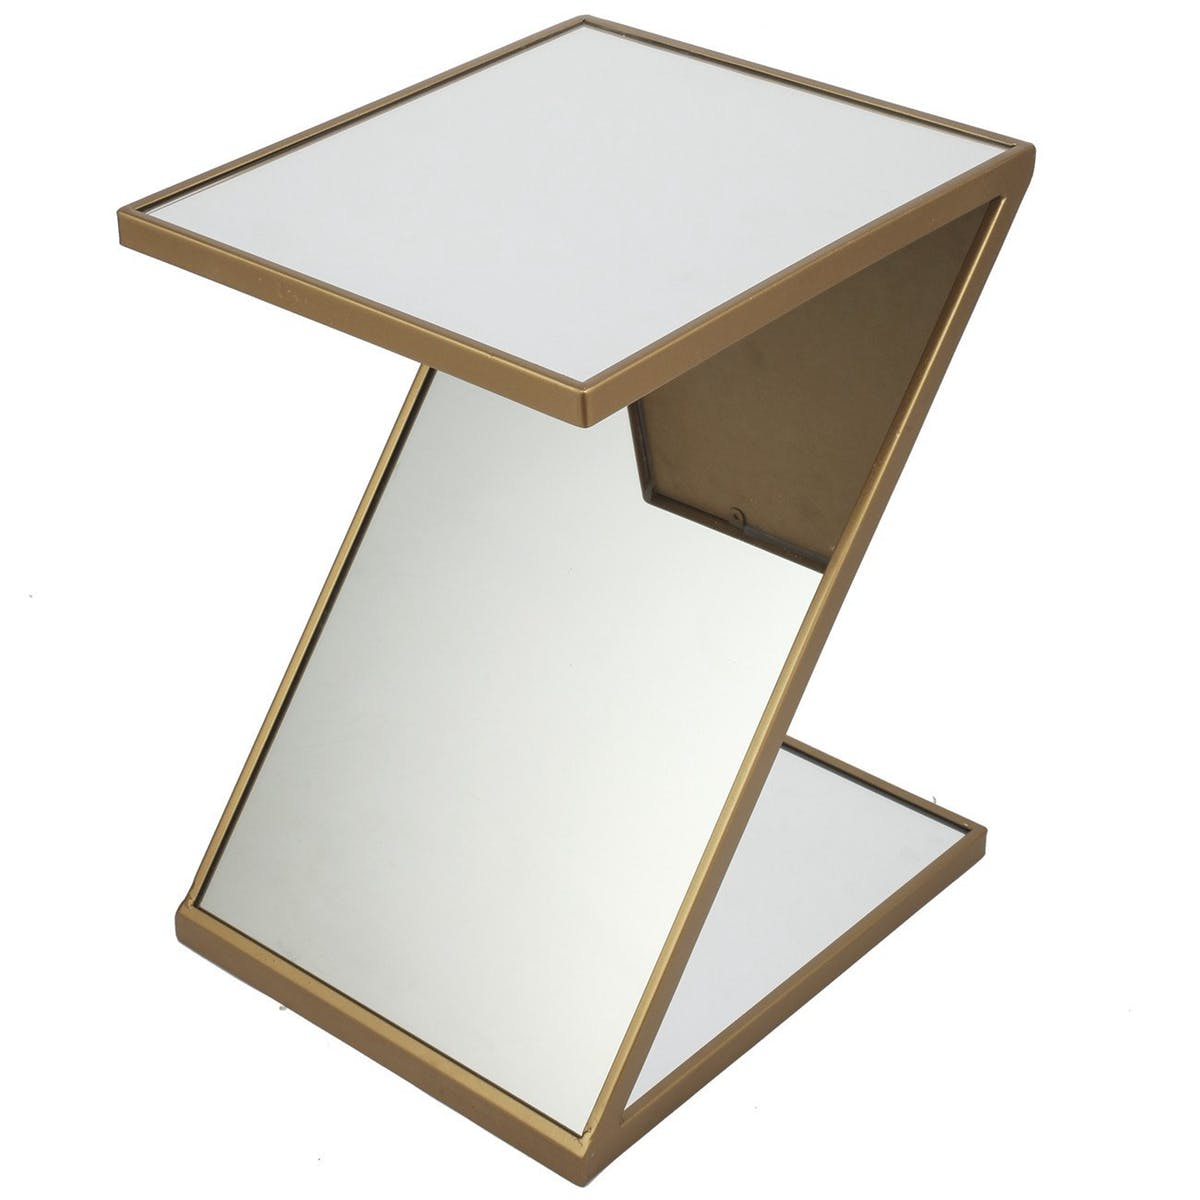 home mirrored shaped accent table modish tap expand drum side ballard furniture white cloth placemats pub height and chairs stackable coffee perspex nest modern brass lamp gray